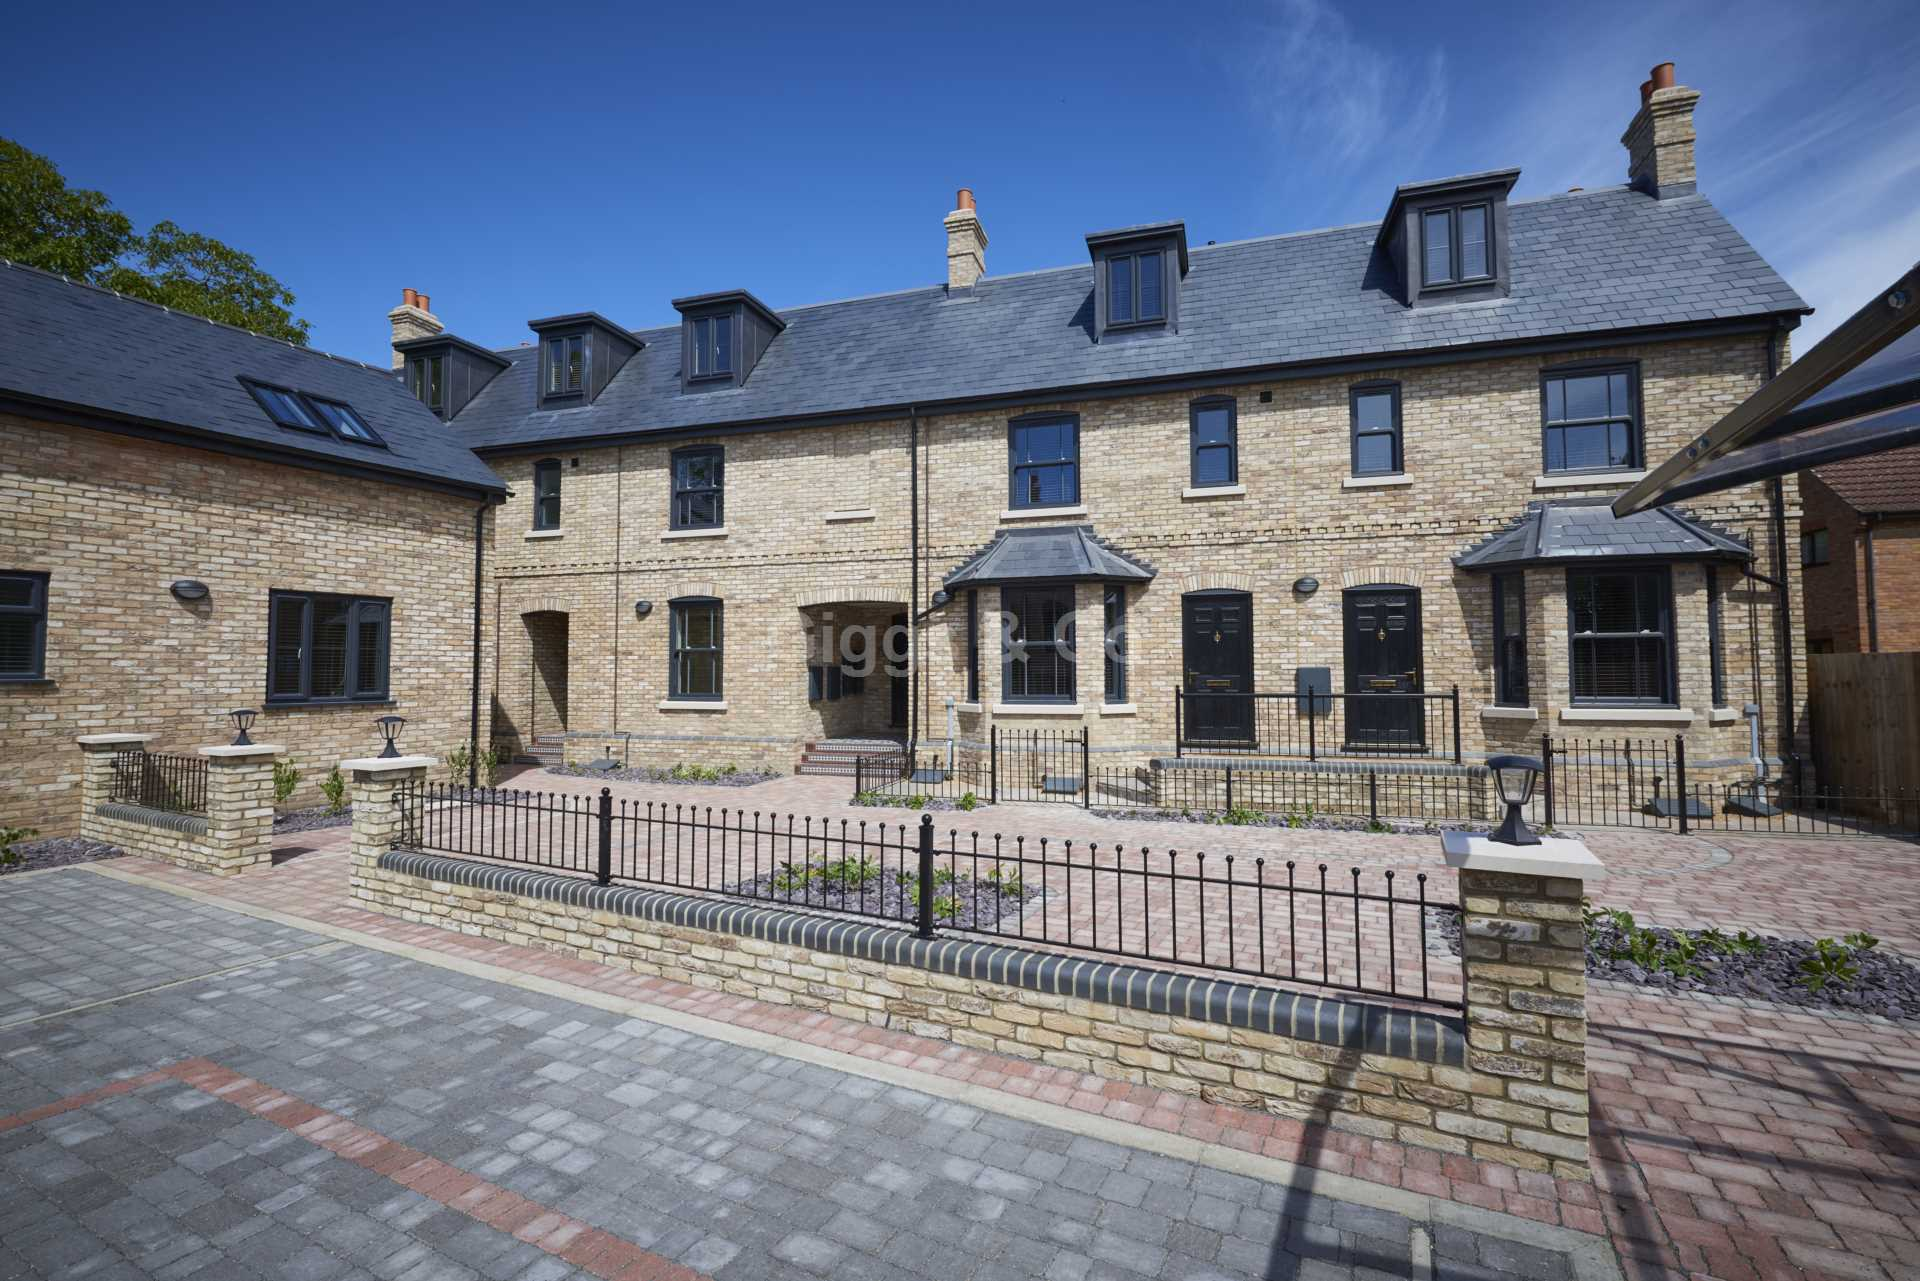 2 bed apartment to rent in East Street, St.Ives, PE27